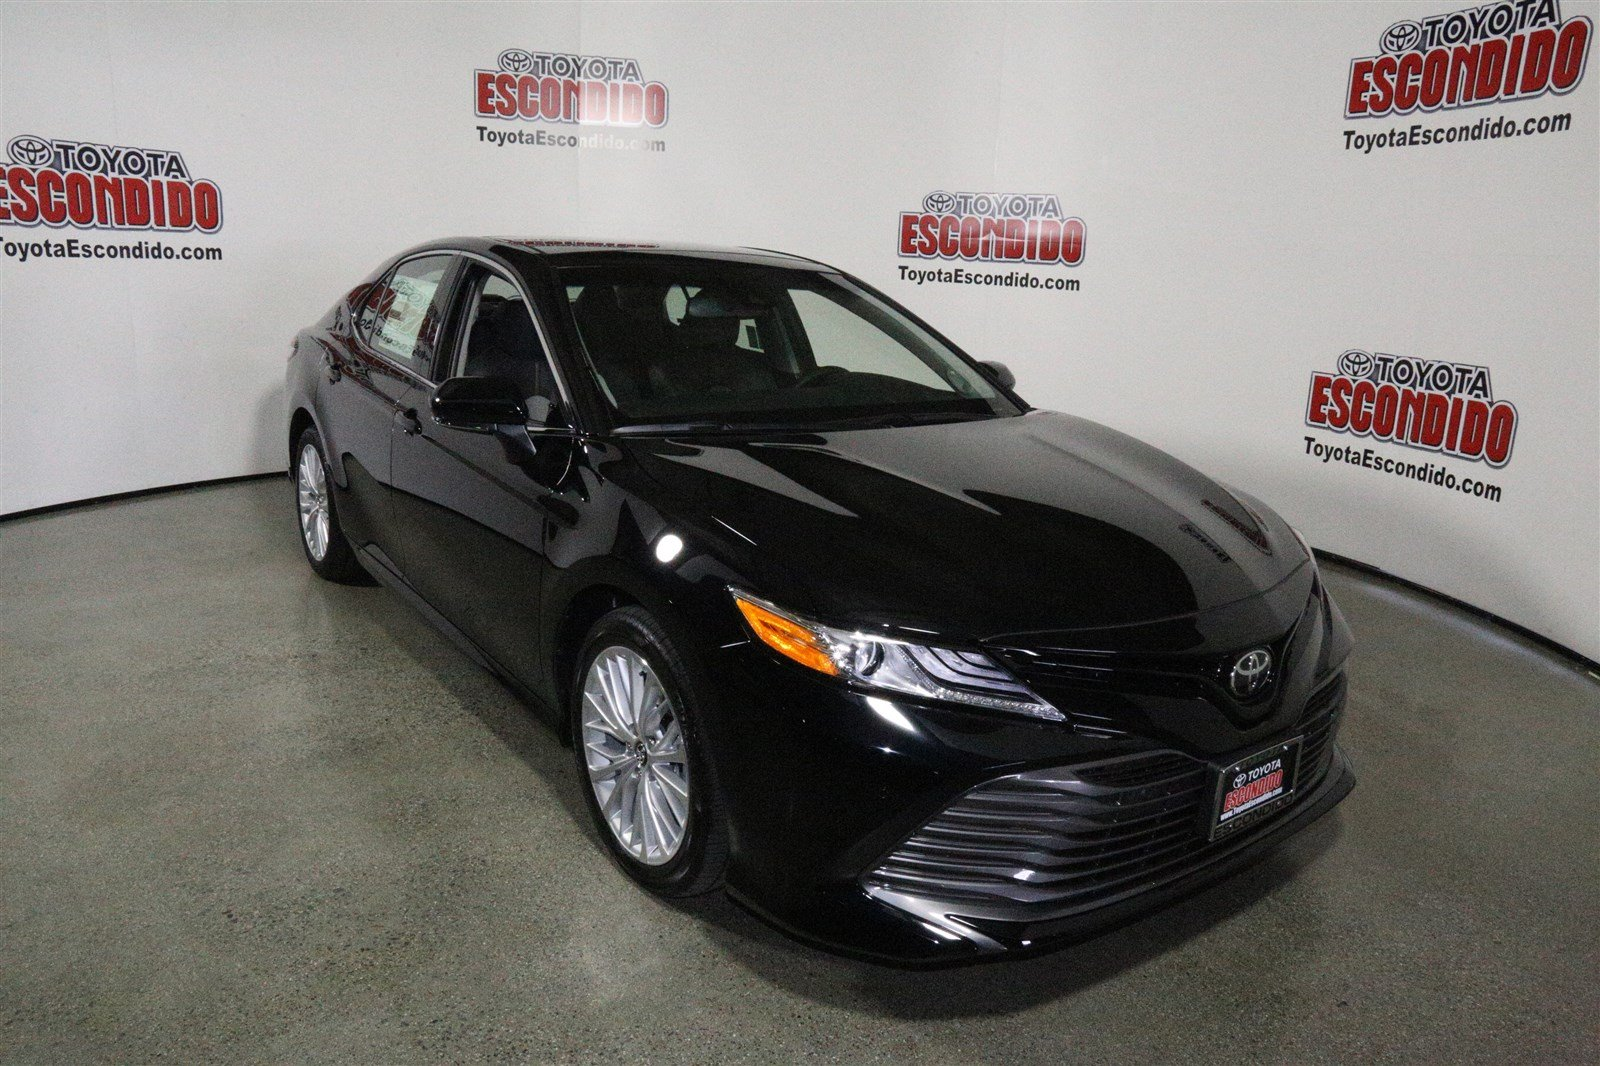 new 2018 toyota camry xle v6 4dr car in escondido 1015166. Black Bedroom Furniture Sets. Home Design Ideas